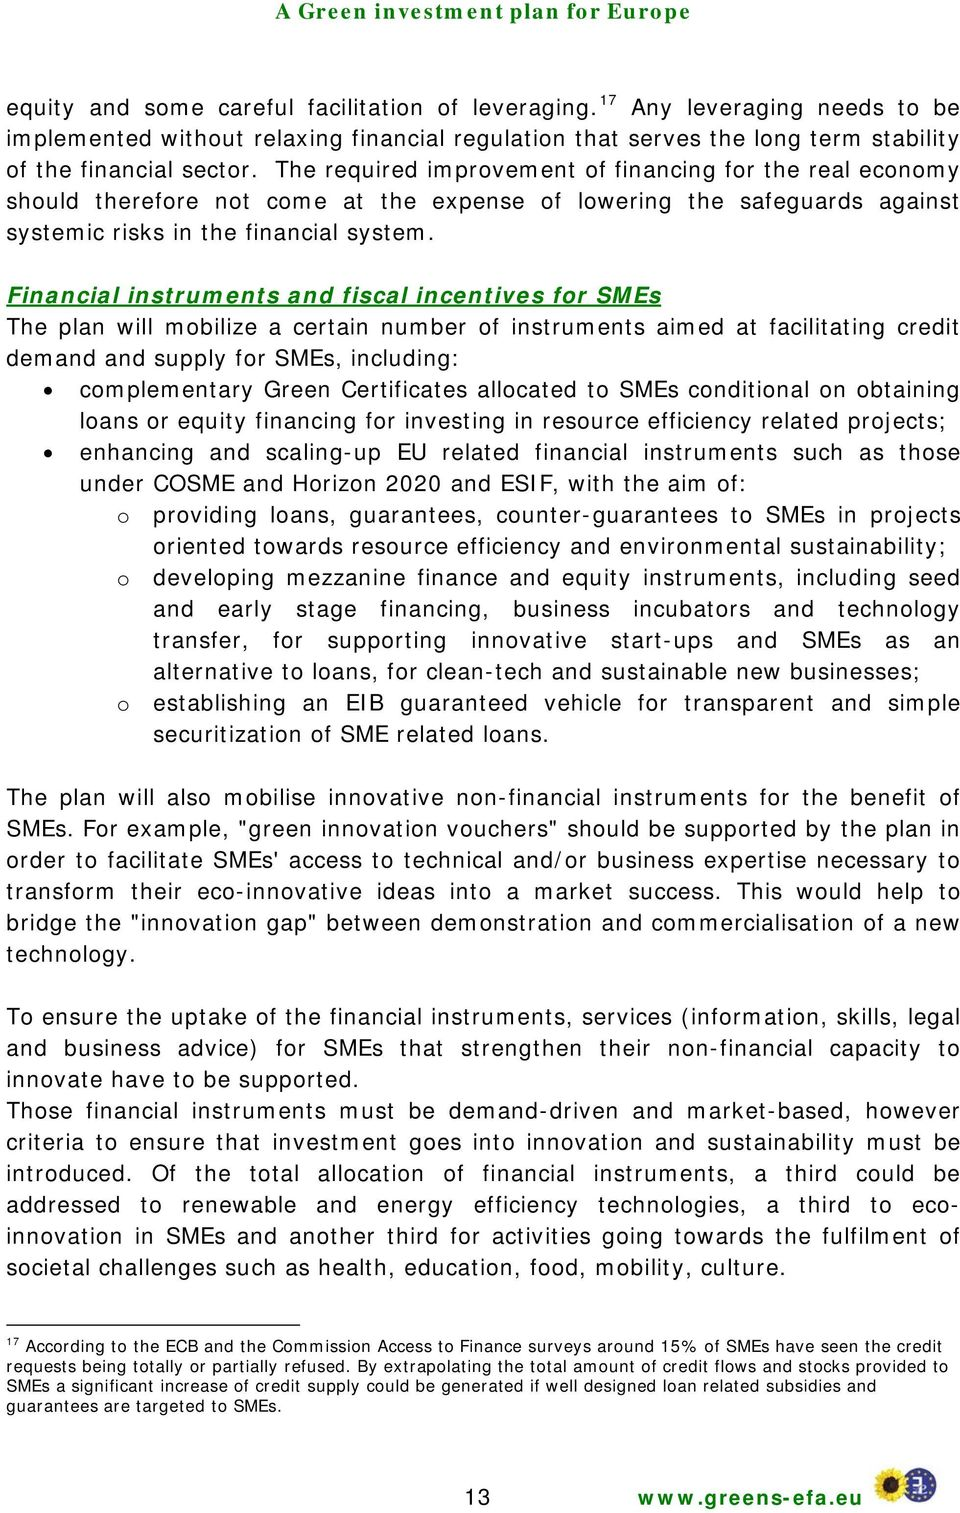 Financial instruments and fiscal incentives for SMEs The plan will mobilize a certain number of instruments aimed at facilitating credit demand and supply for SMEs, including: complementary Green